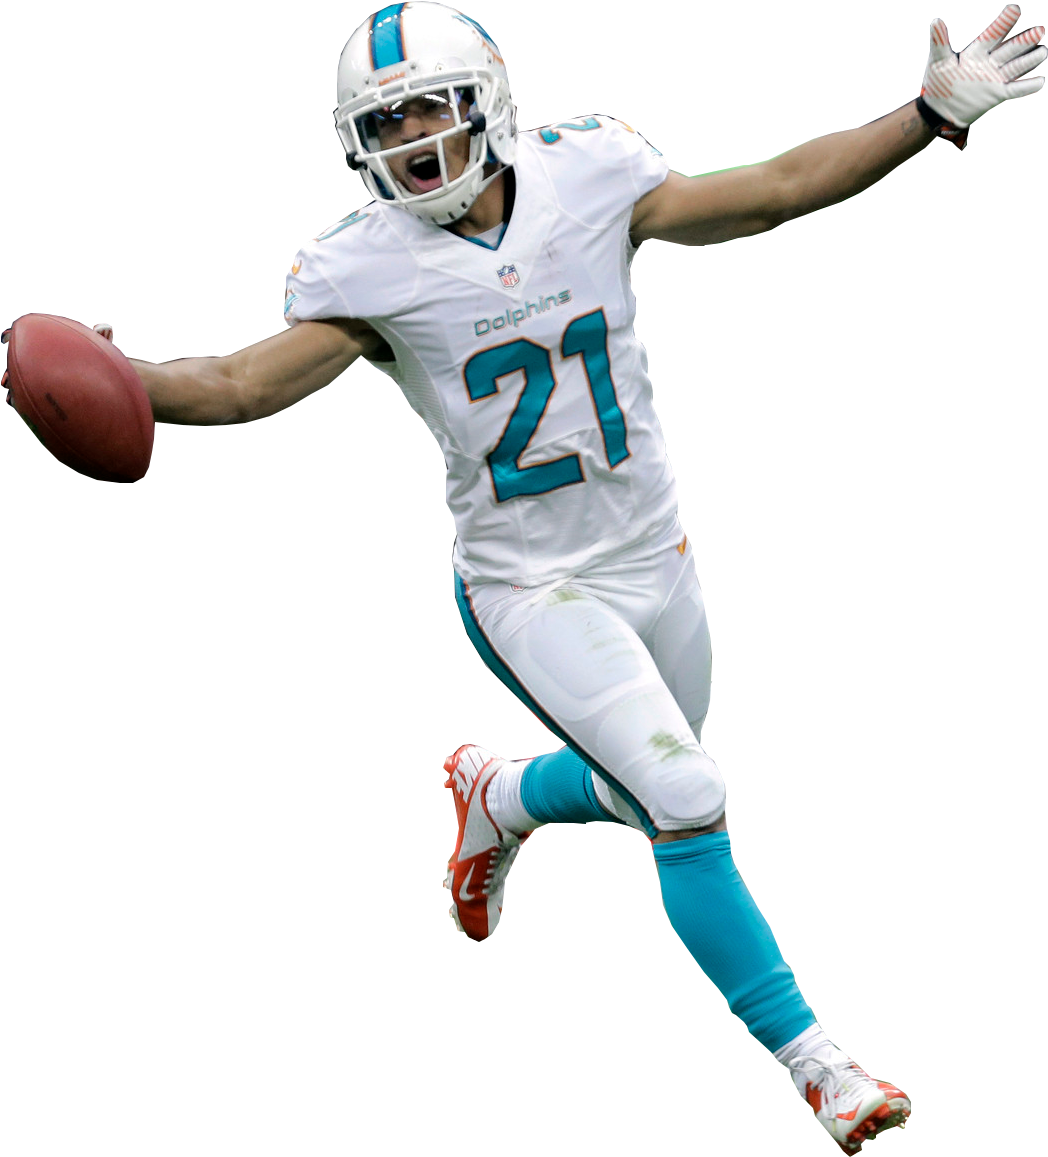 Transparent free football cliparts - Free Clipart American Football Punter Black And White - Miami Dolphins Player Png